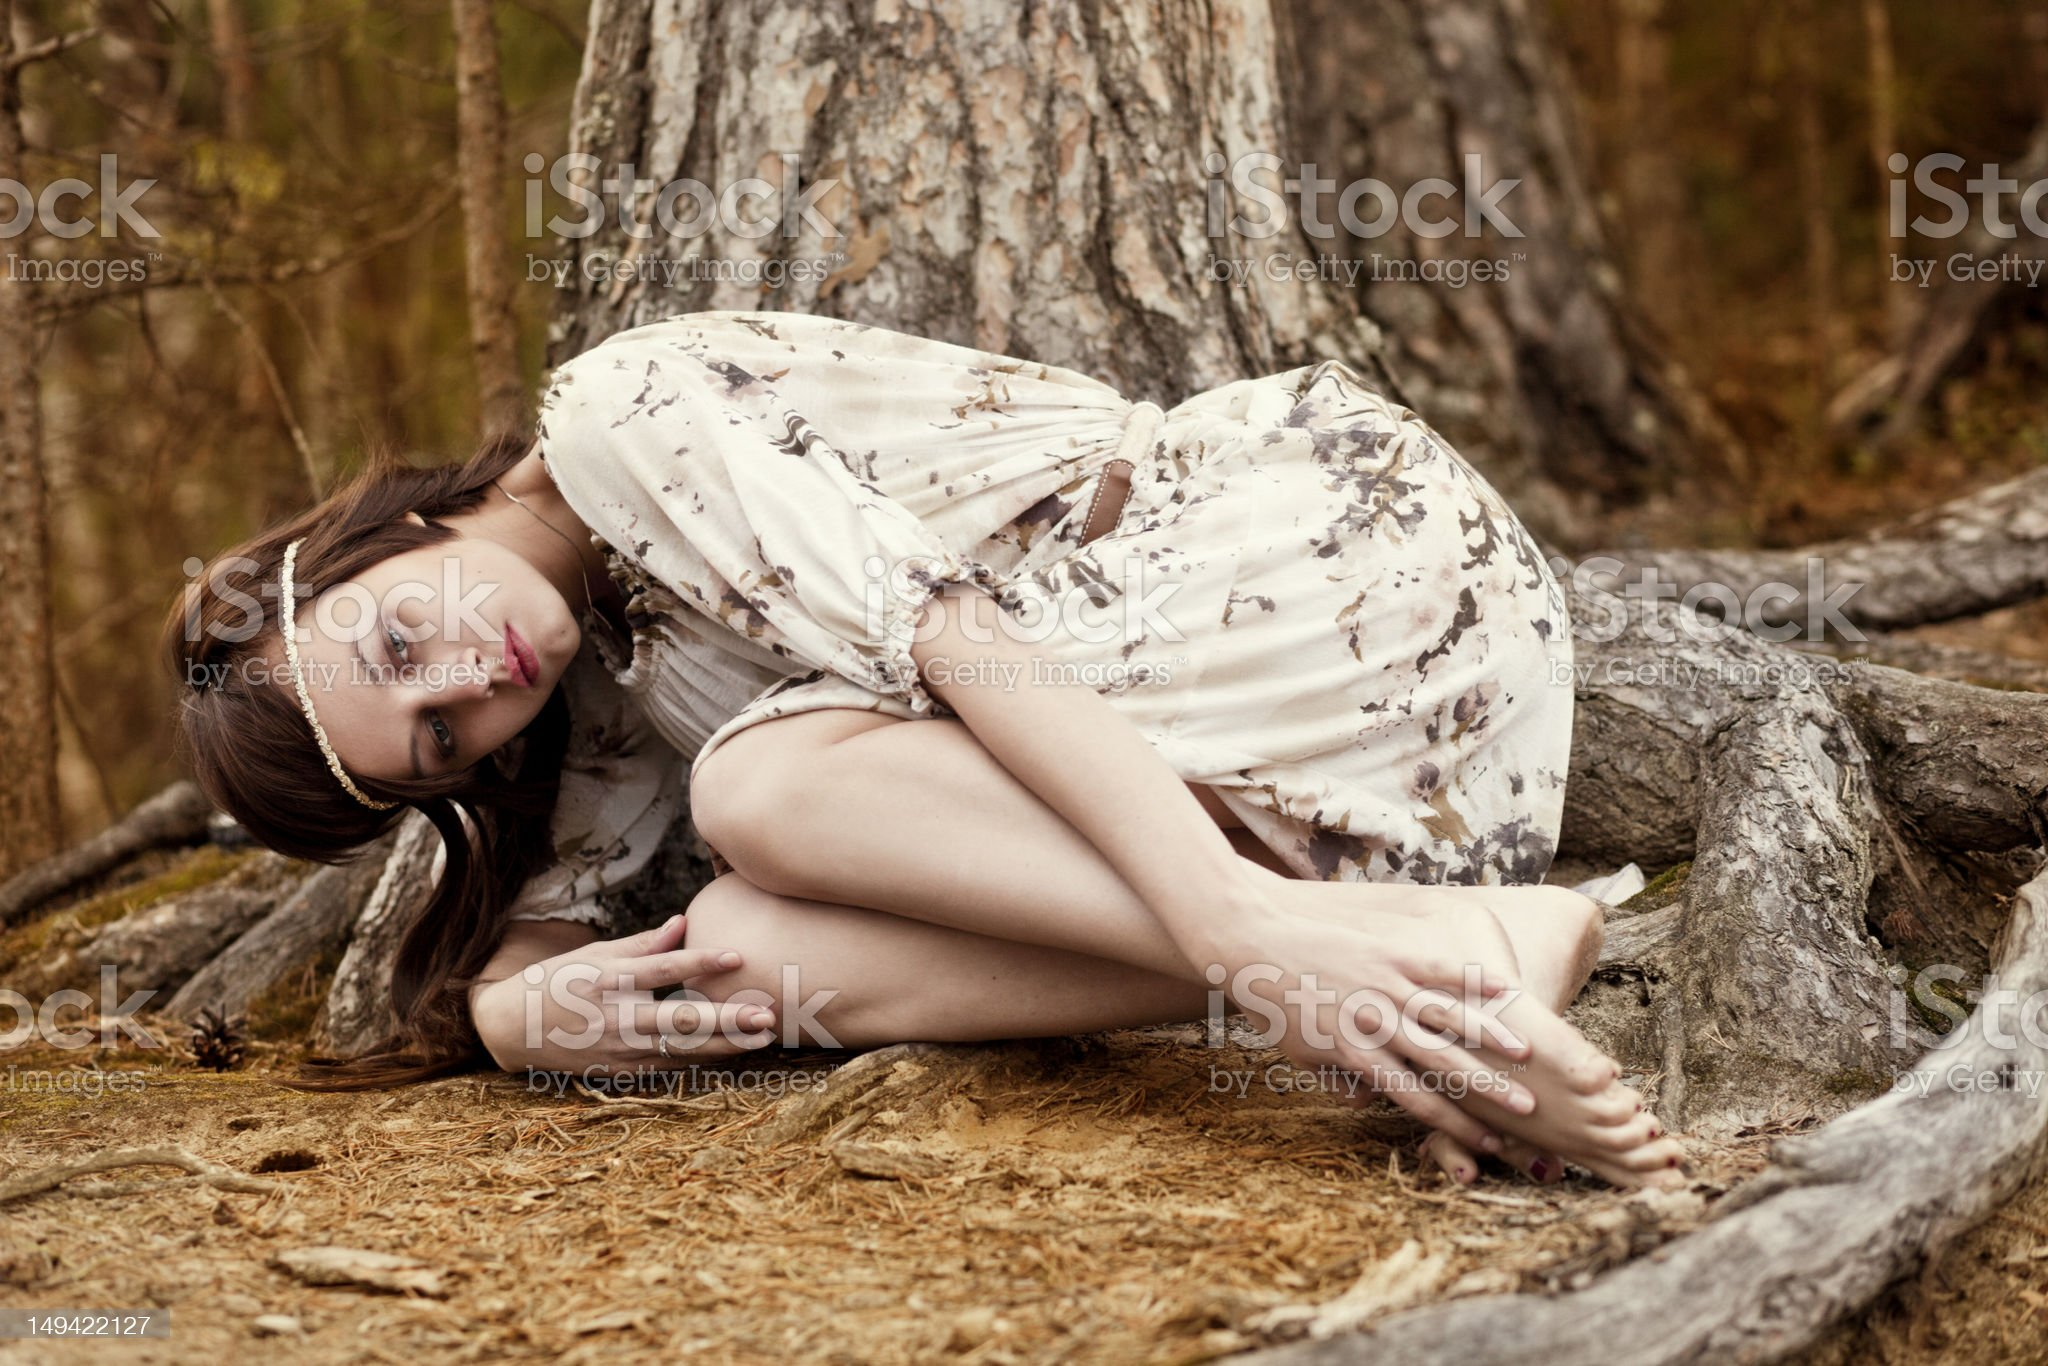 https://media.istockphoto.com/photos/girl-is-relaxing-under-tree-picture-id149422127?s=2048x2048